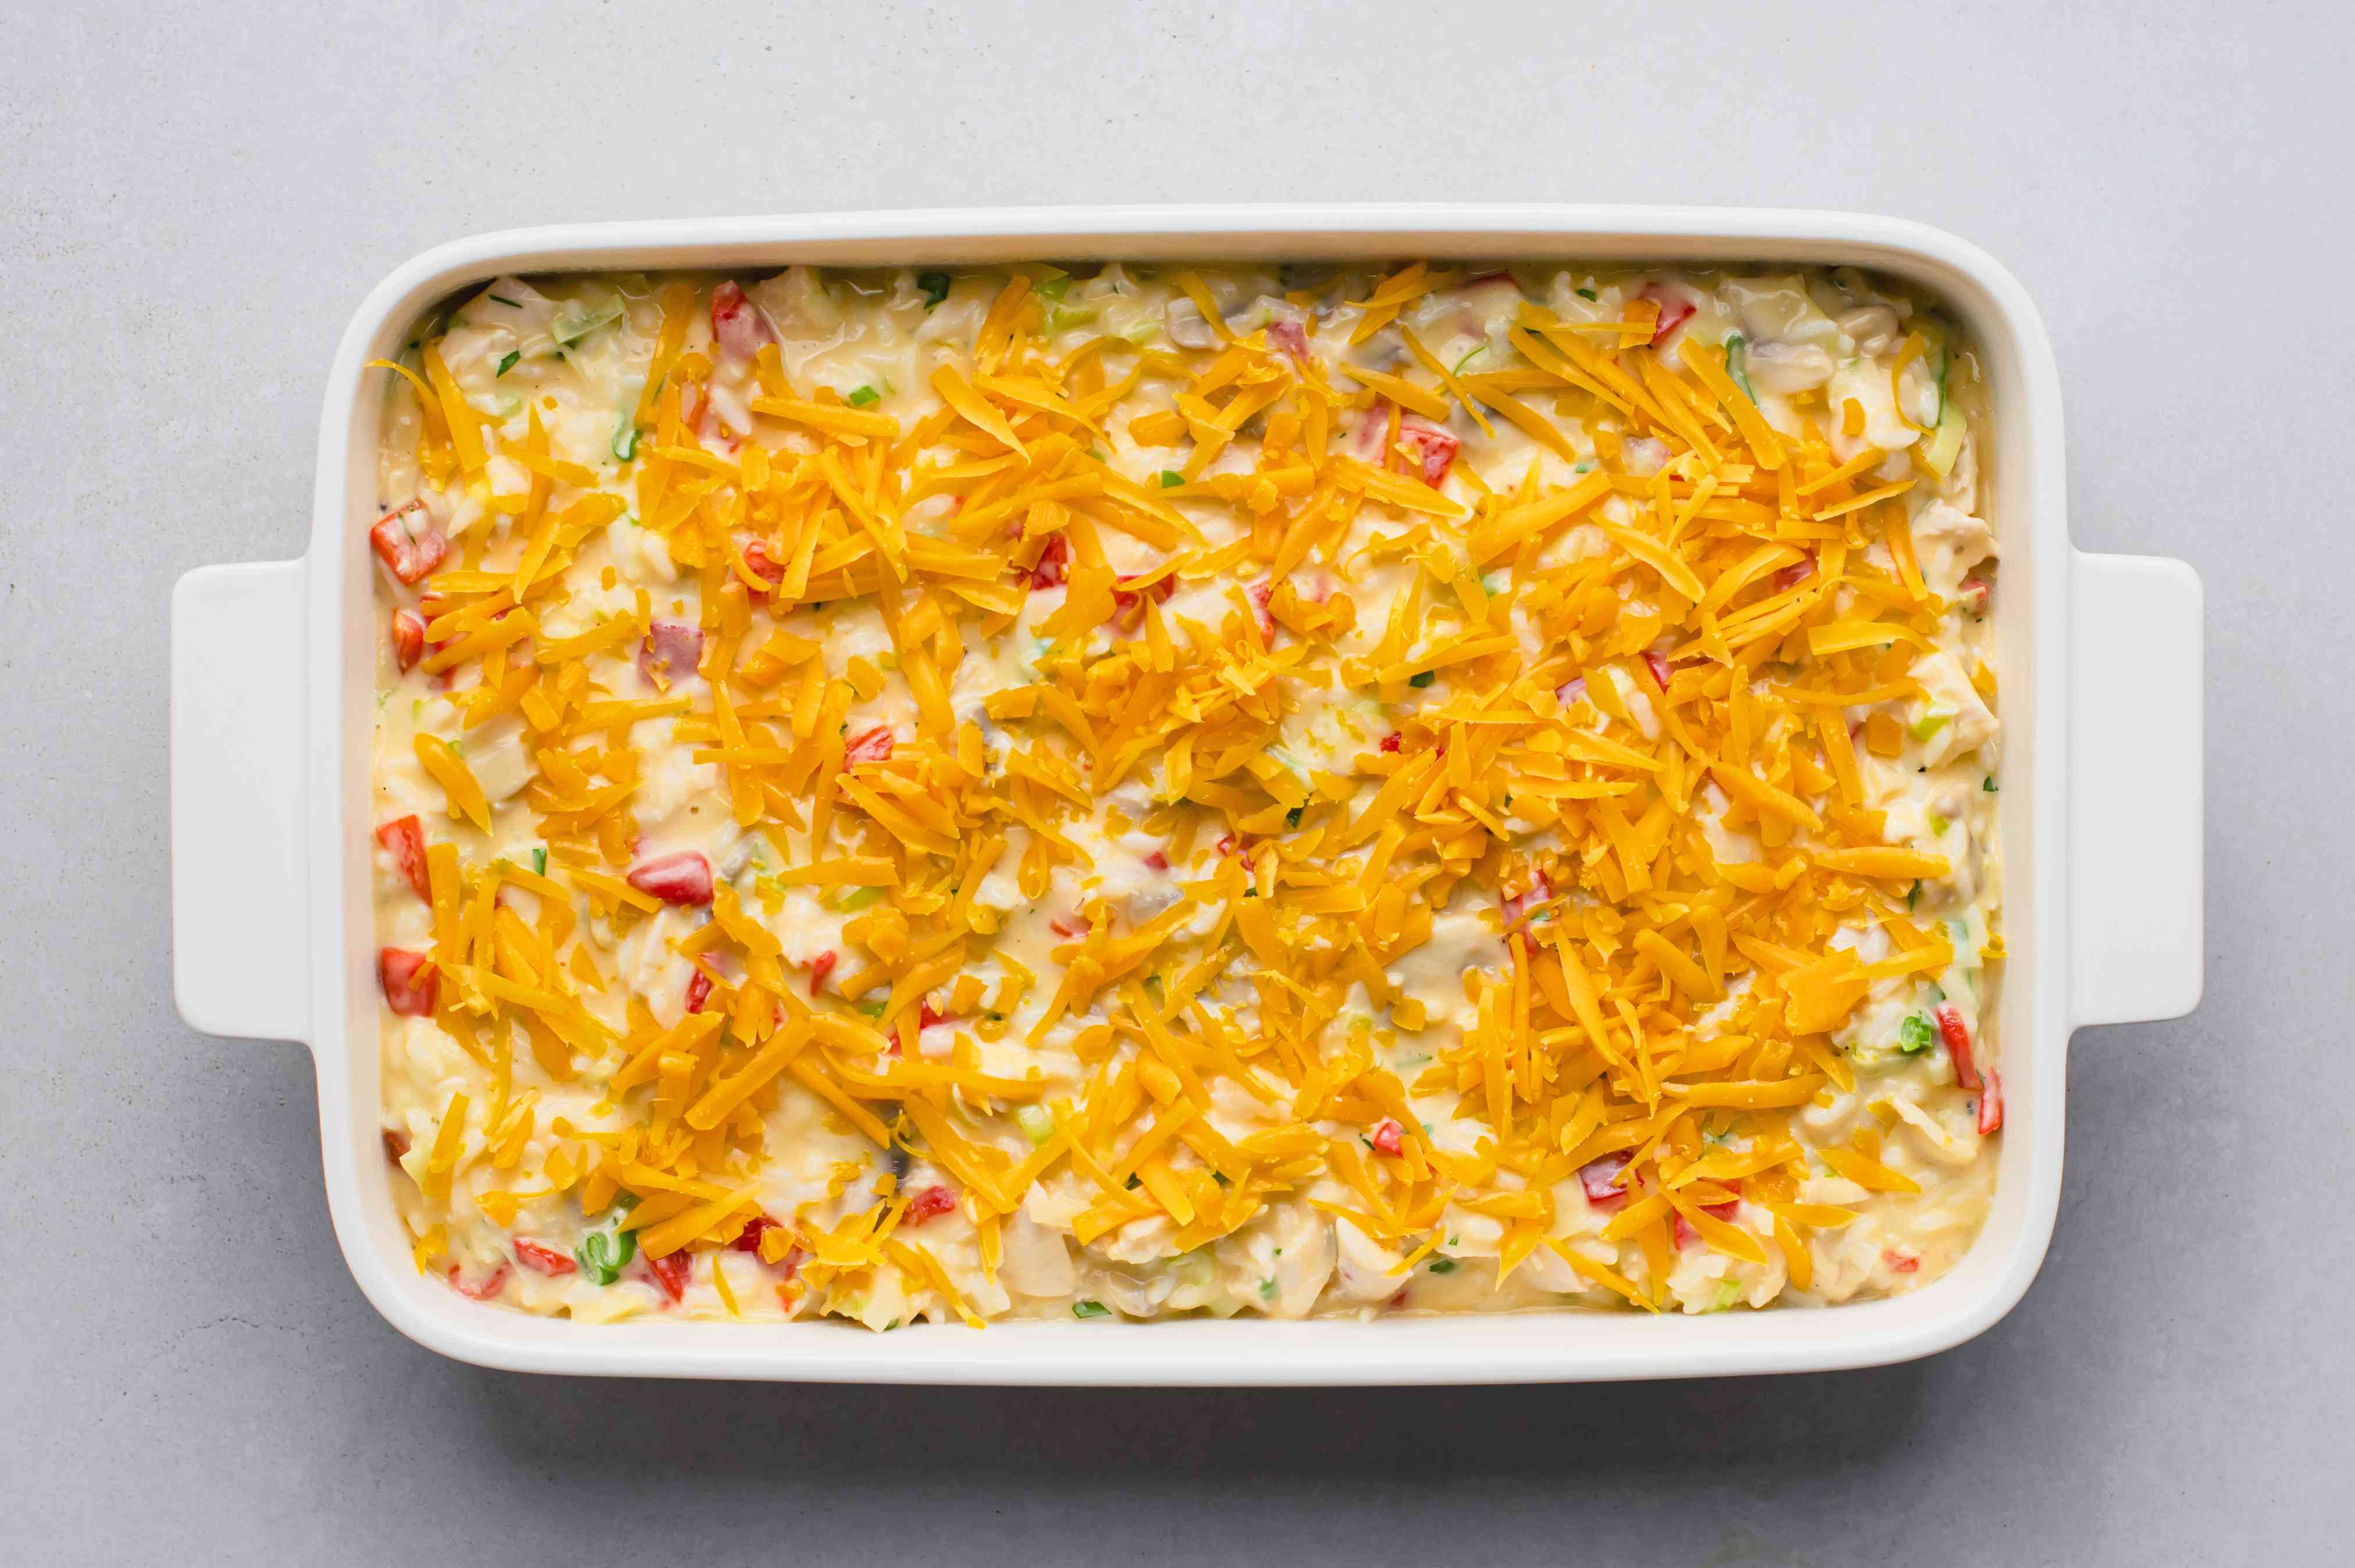 chicken and rice mixture poured into the casserole dish and topped with cheese